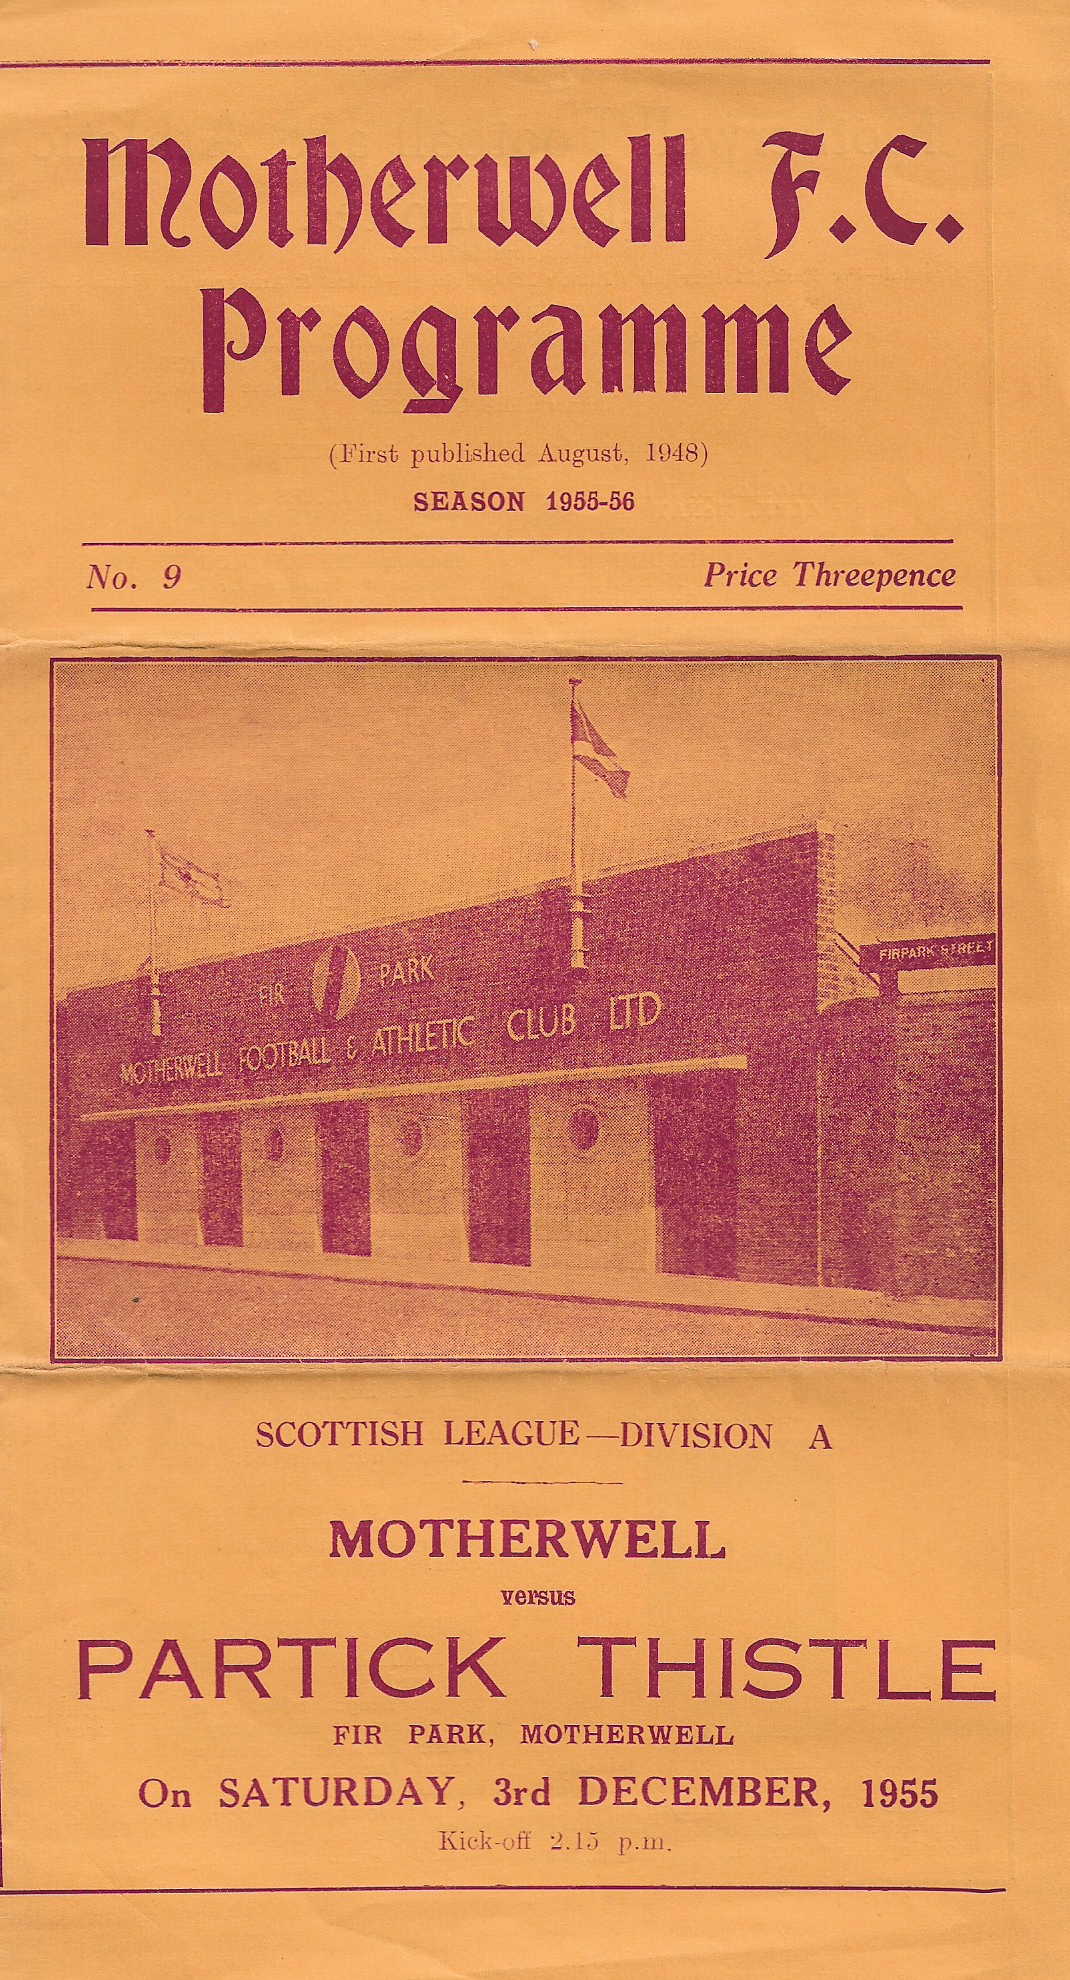 vs Partick Thistle - Programme Cover